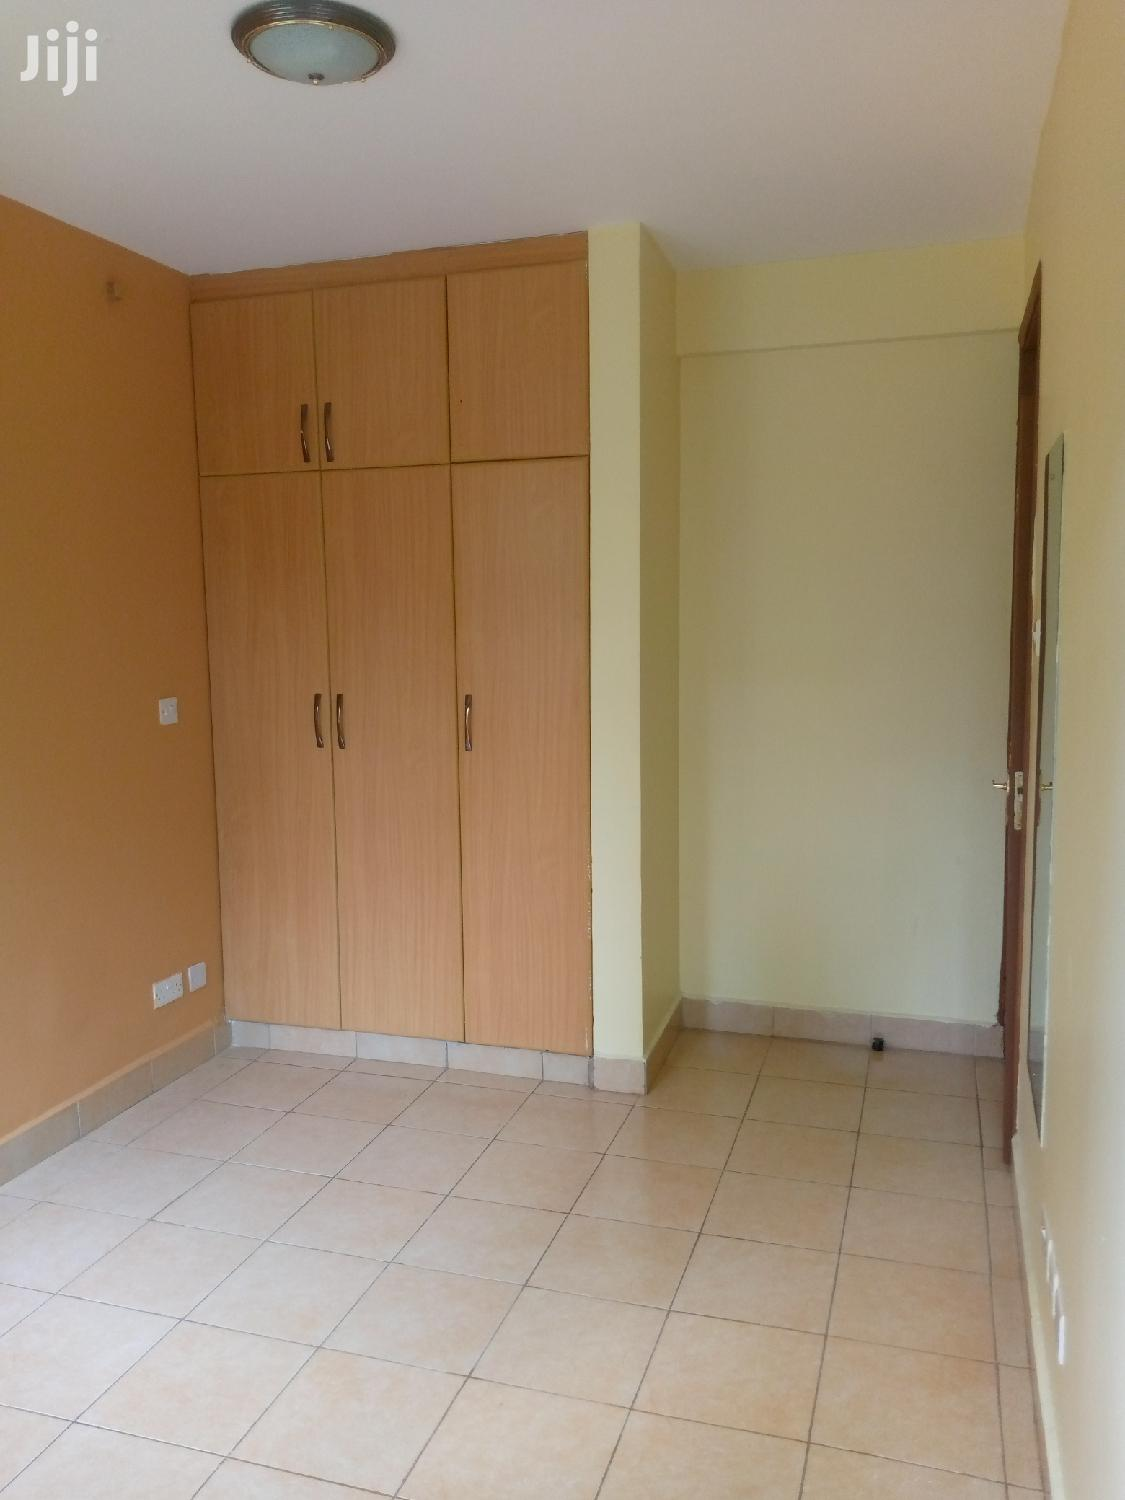 Archive: Lovely One Bedroom Apartment To Let In Westlands